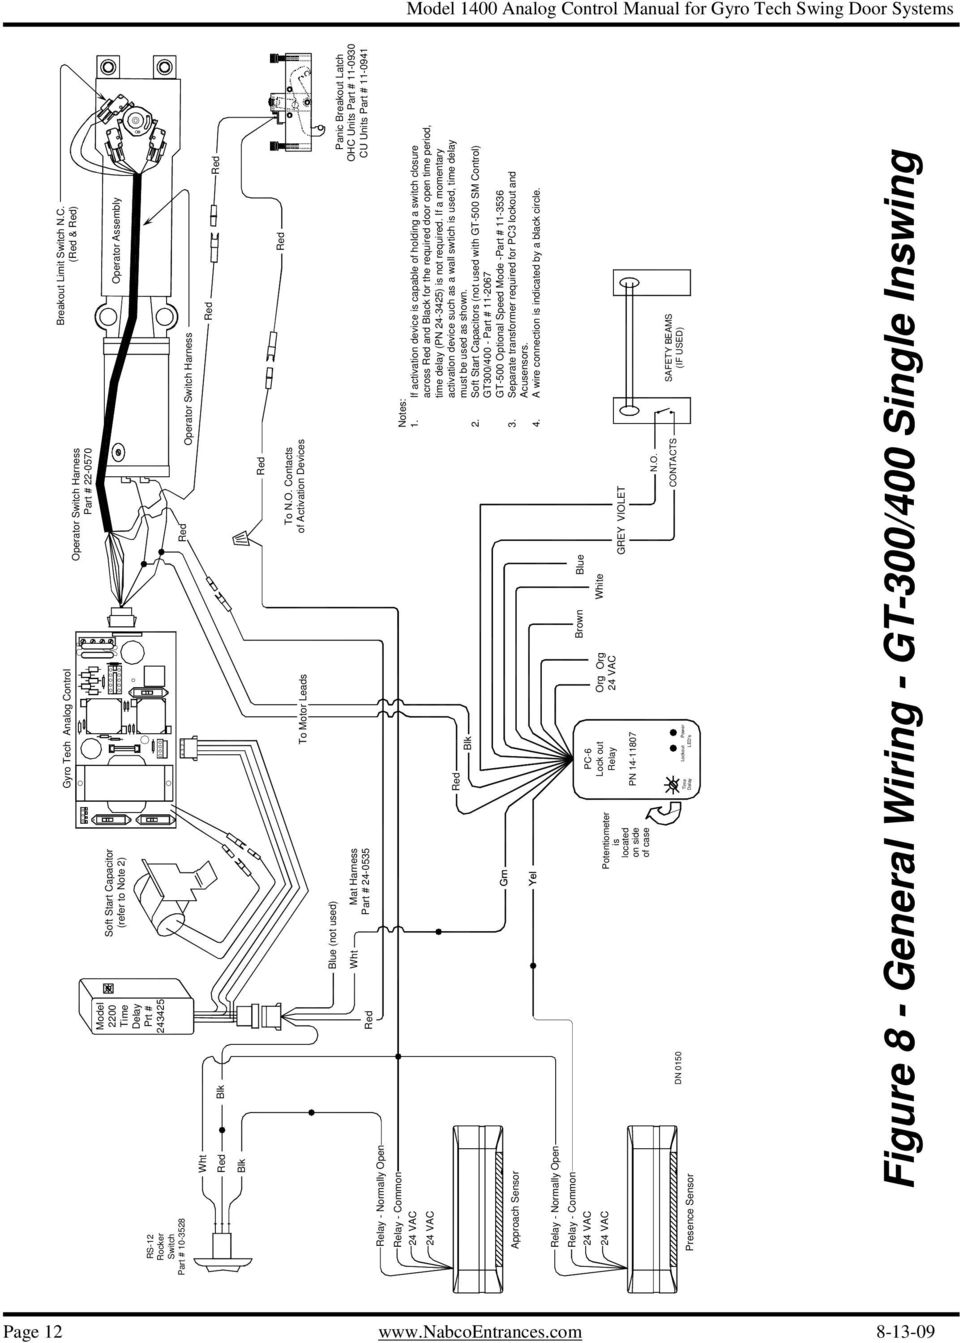 Analog Control Wiring Adjustment Manual For Gyro Tech Swing Door Sliding Gate Operator User S Schematic Diagram If Activation Device Is Capable Of Holding A Switch Closure Across And Black The Required